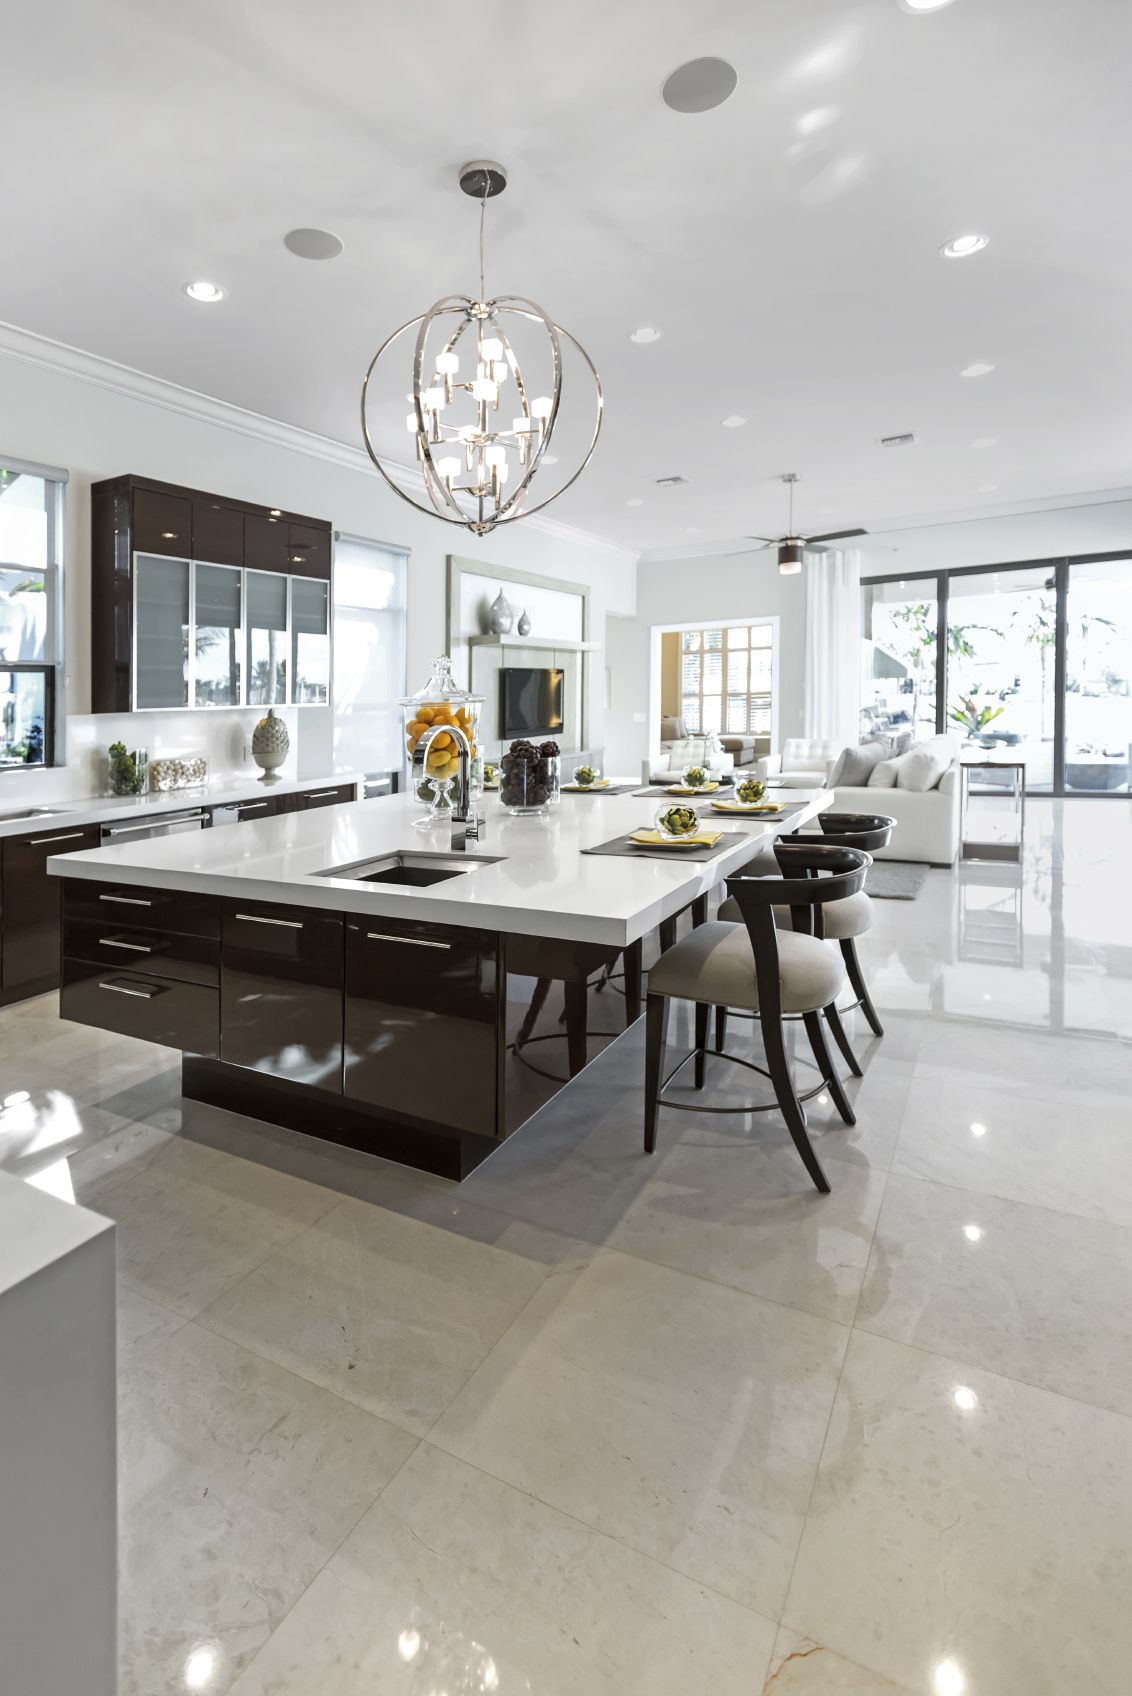 501 Custom Kitchen Ideas for 2018 Pictures  Open